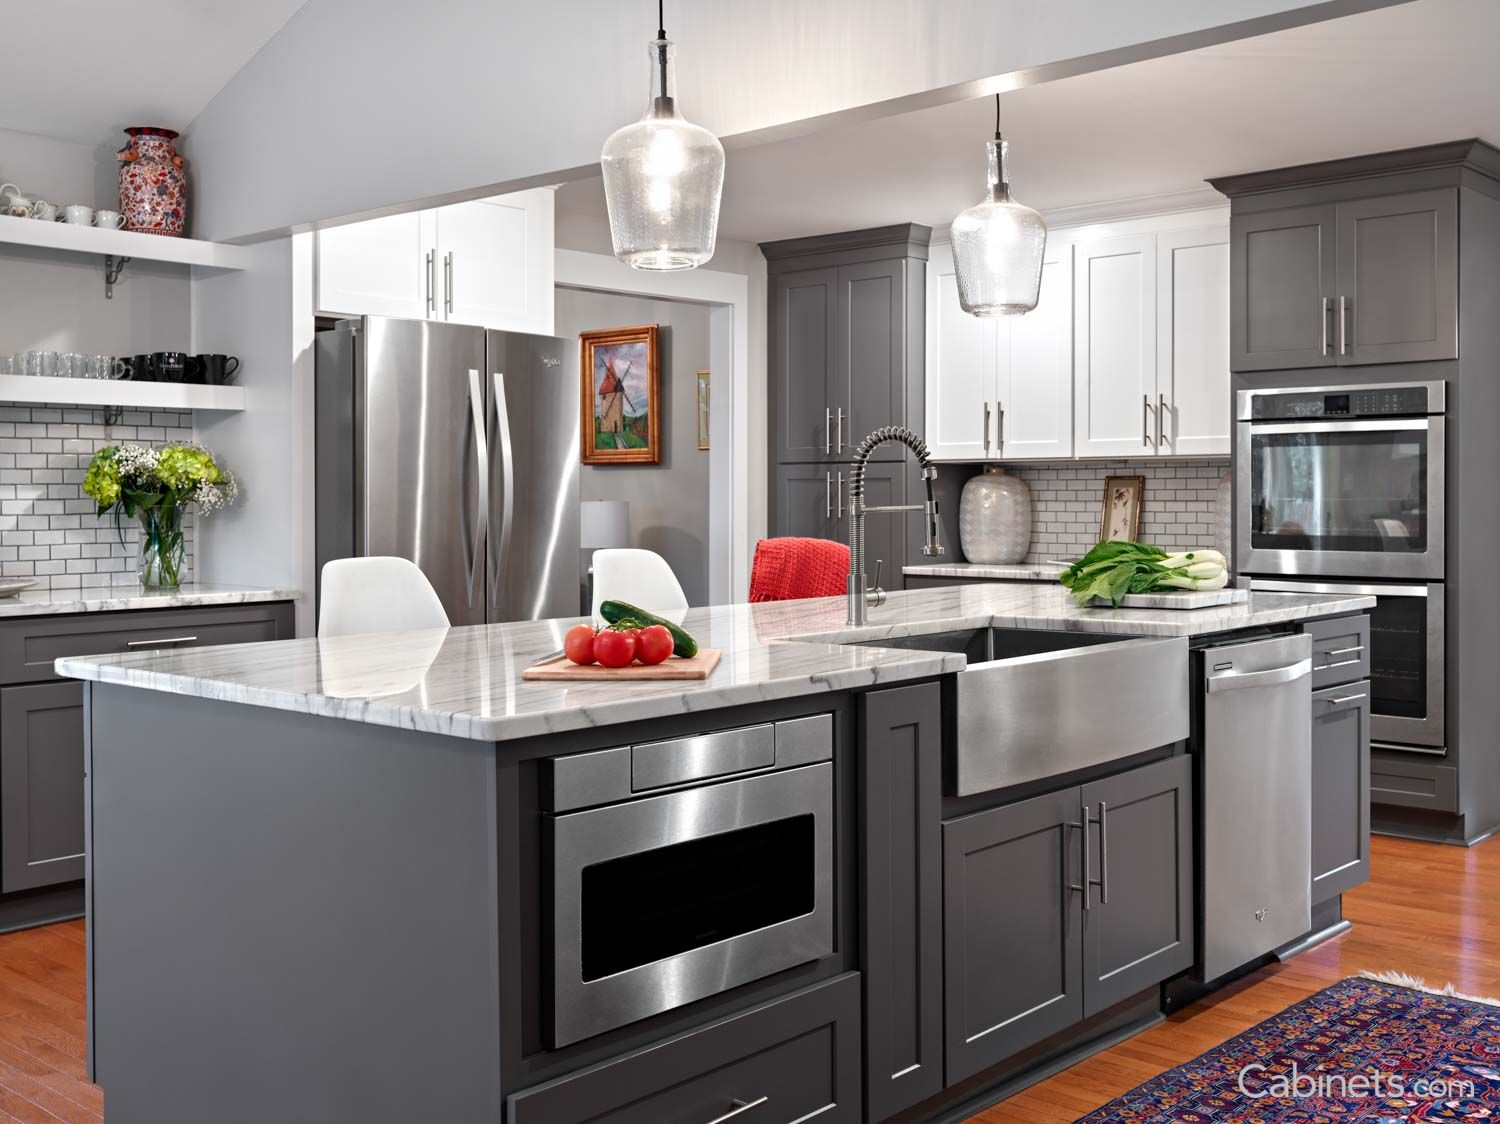 Shaker Rta Birch Gray Contemporary Kitchen Cabinets Cheap Kitchen Cabinets Shaker Kitchen Cabinets